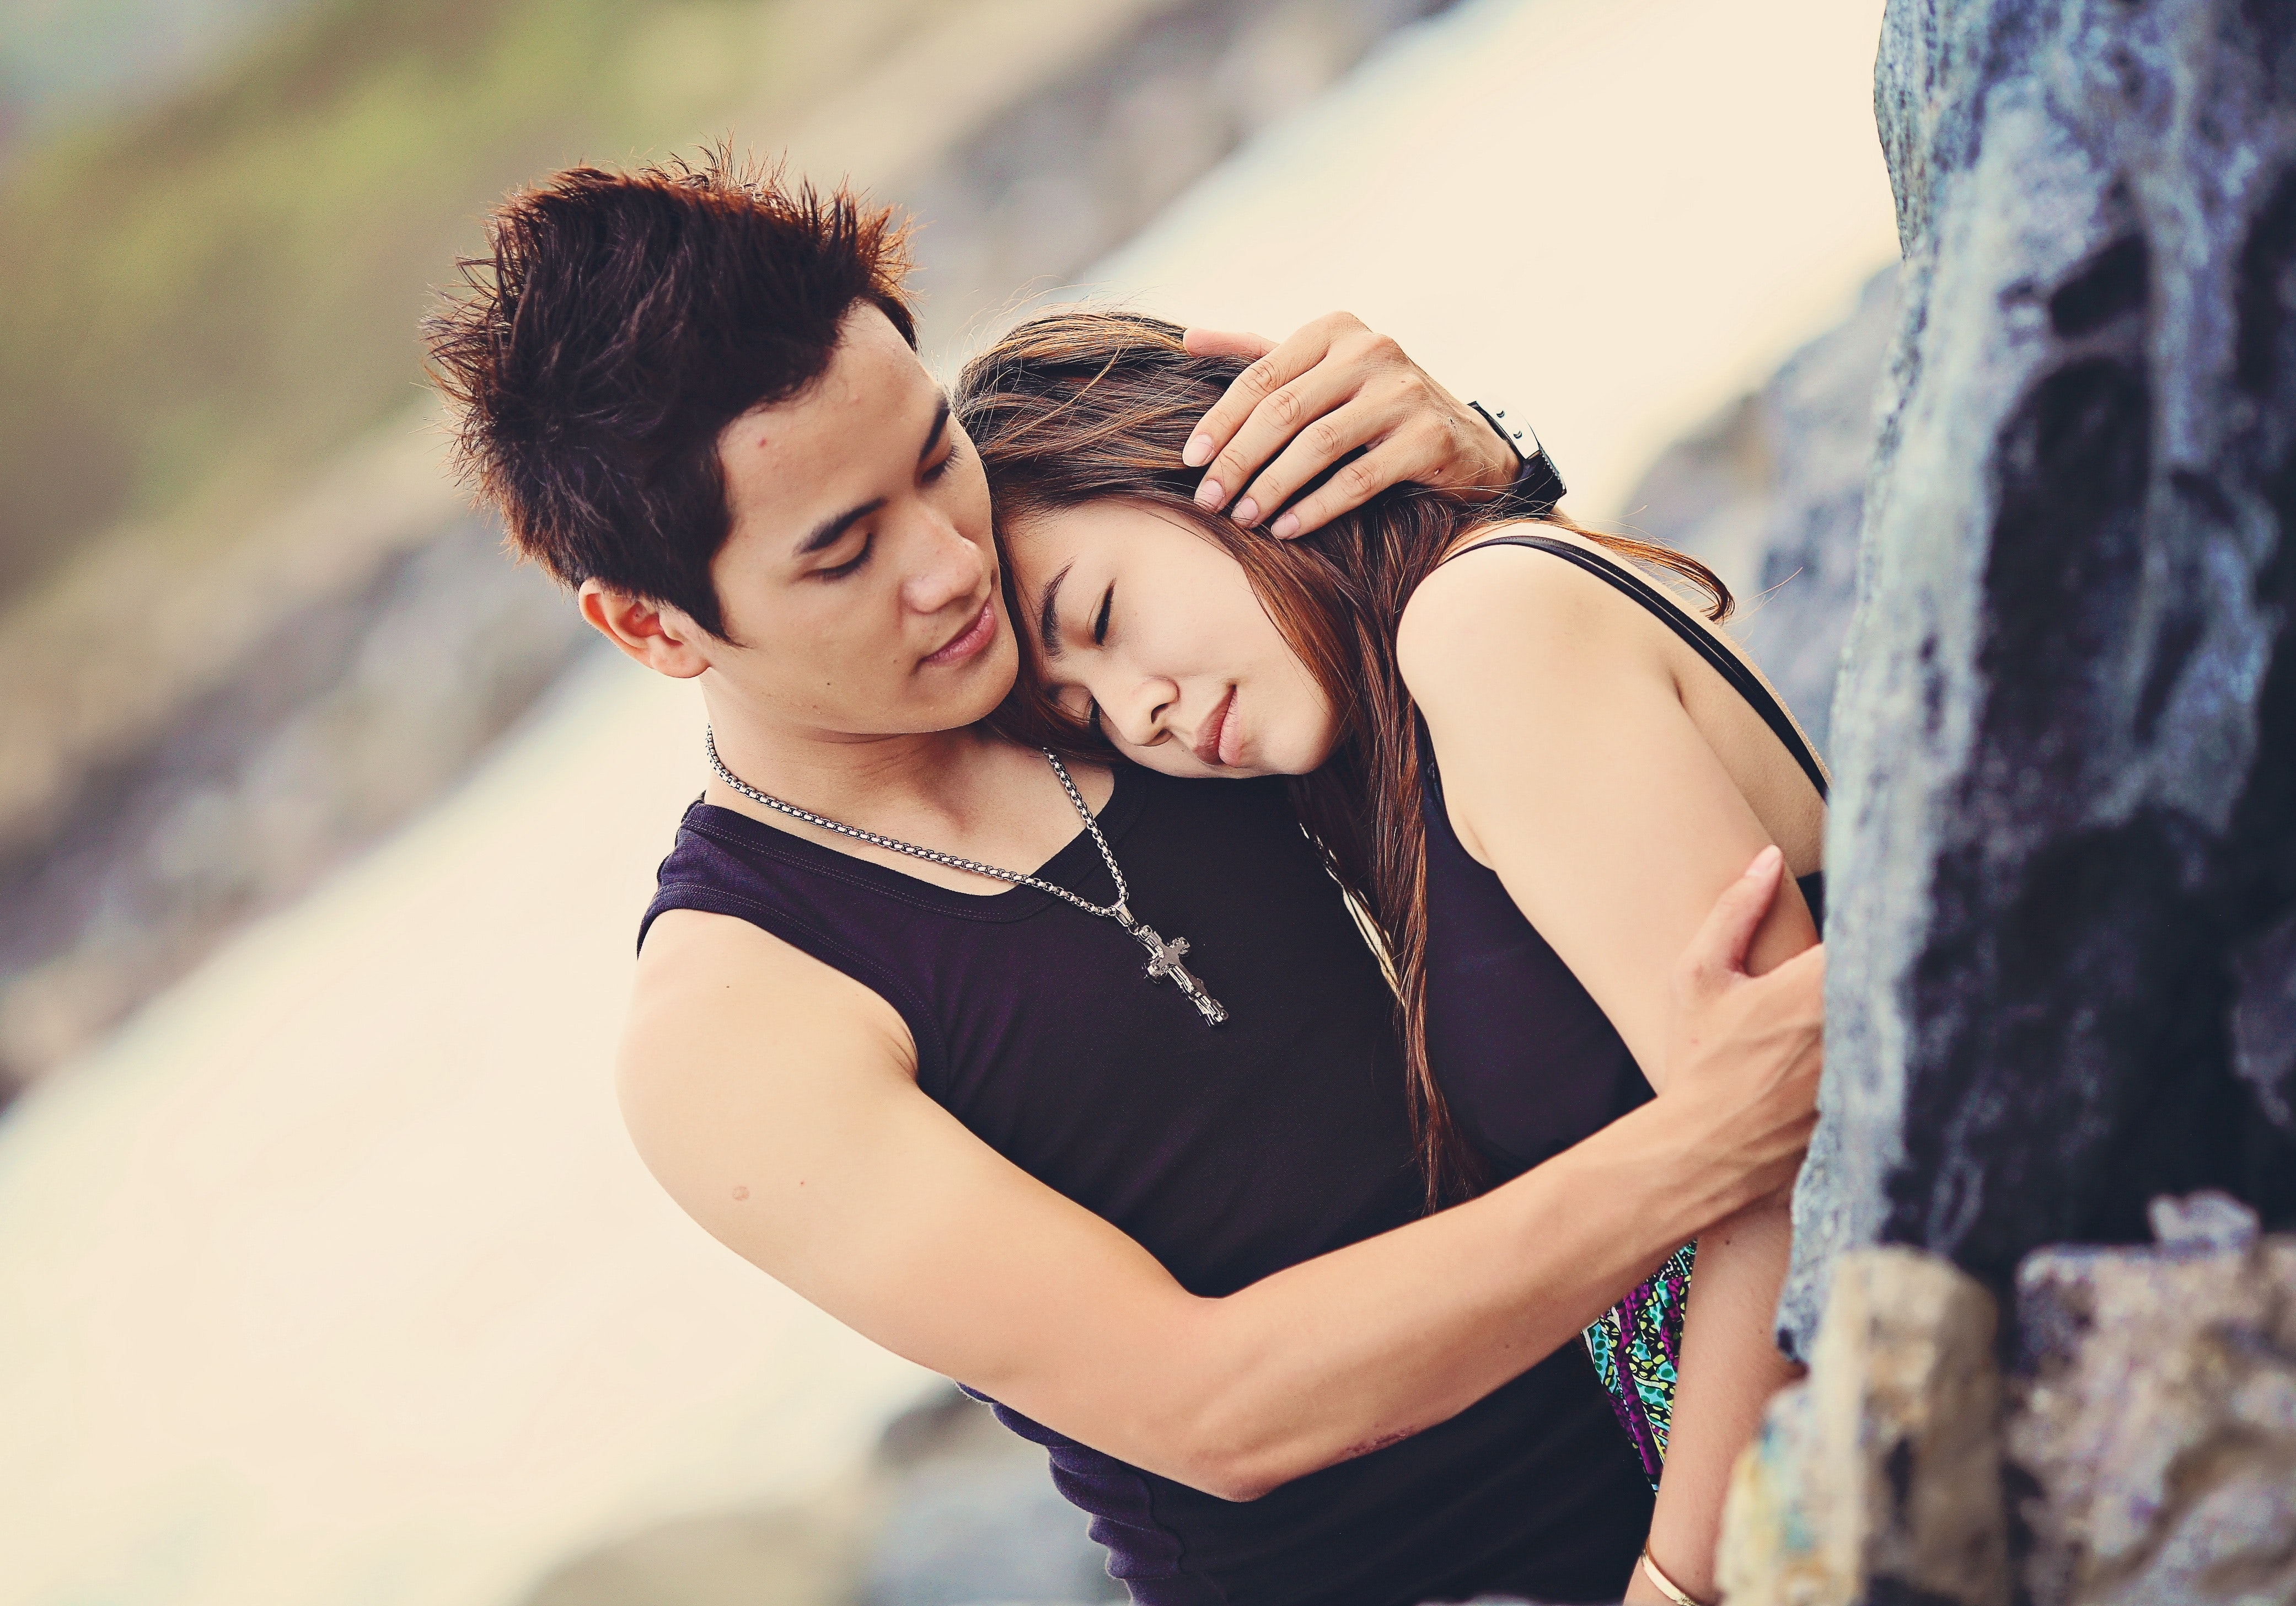 Man Hugging a Woman Wearing Black Tank Top, Adult, Holding, Travel, Togetherness, HQ Photo